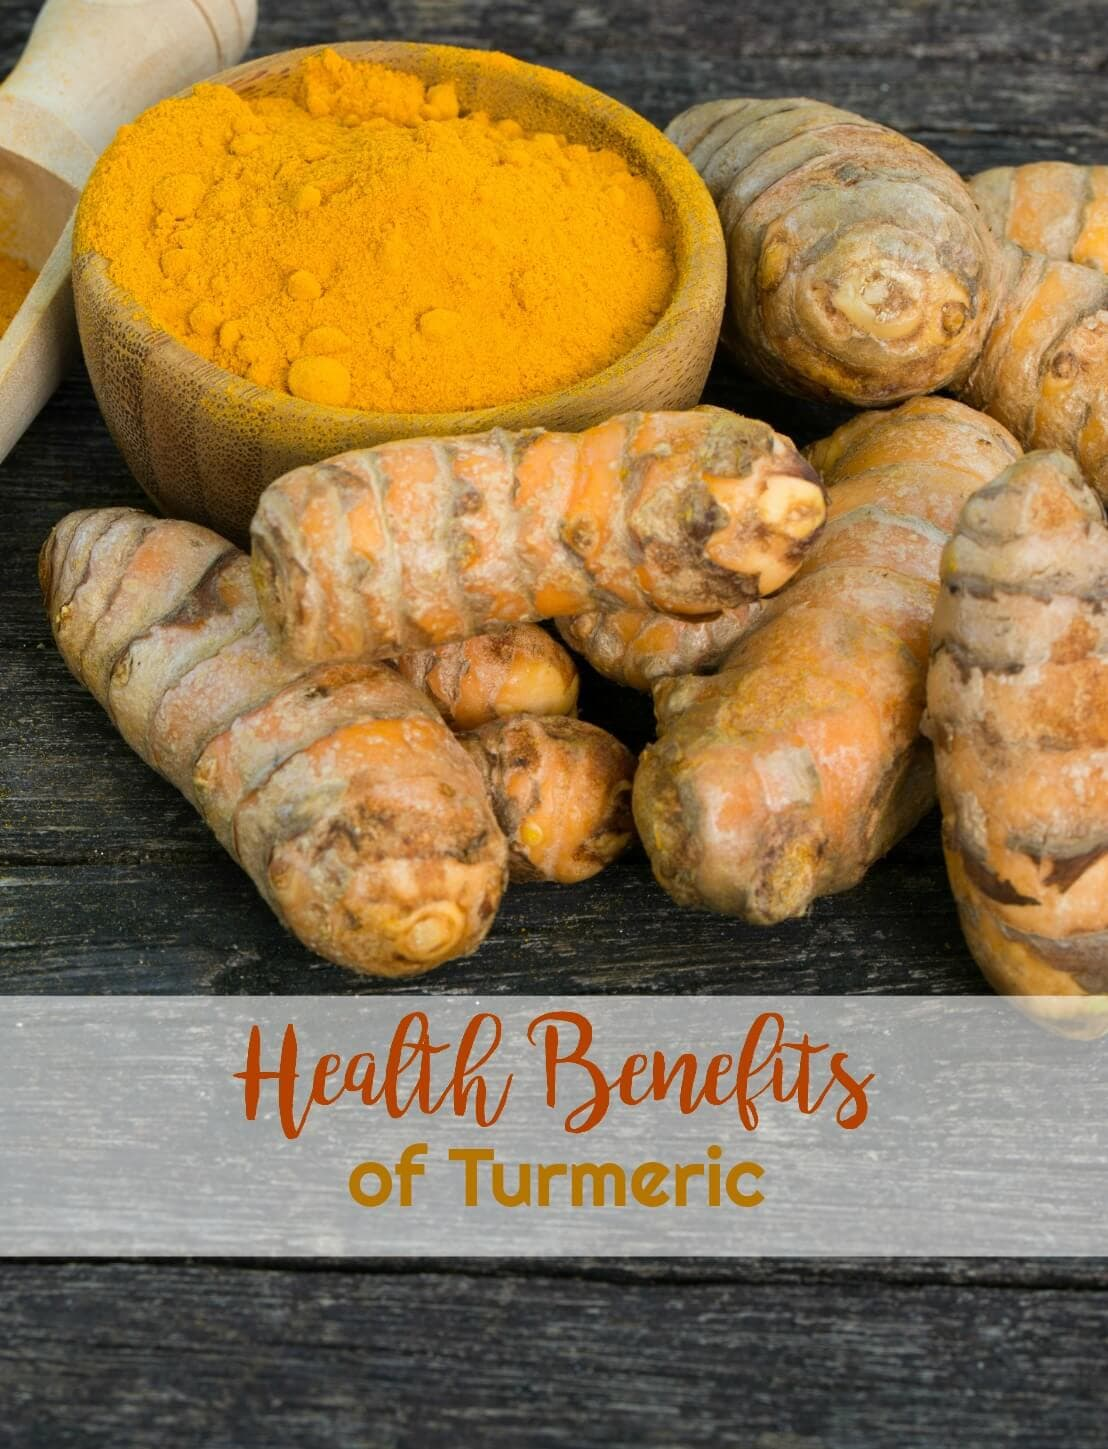 Health Benefits of Turmeric - Peace Love and Low Carb